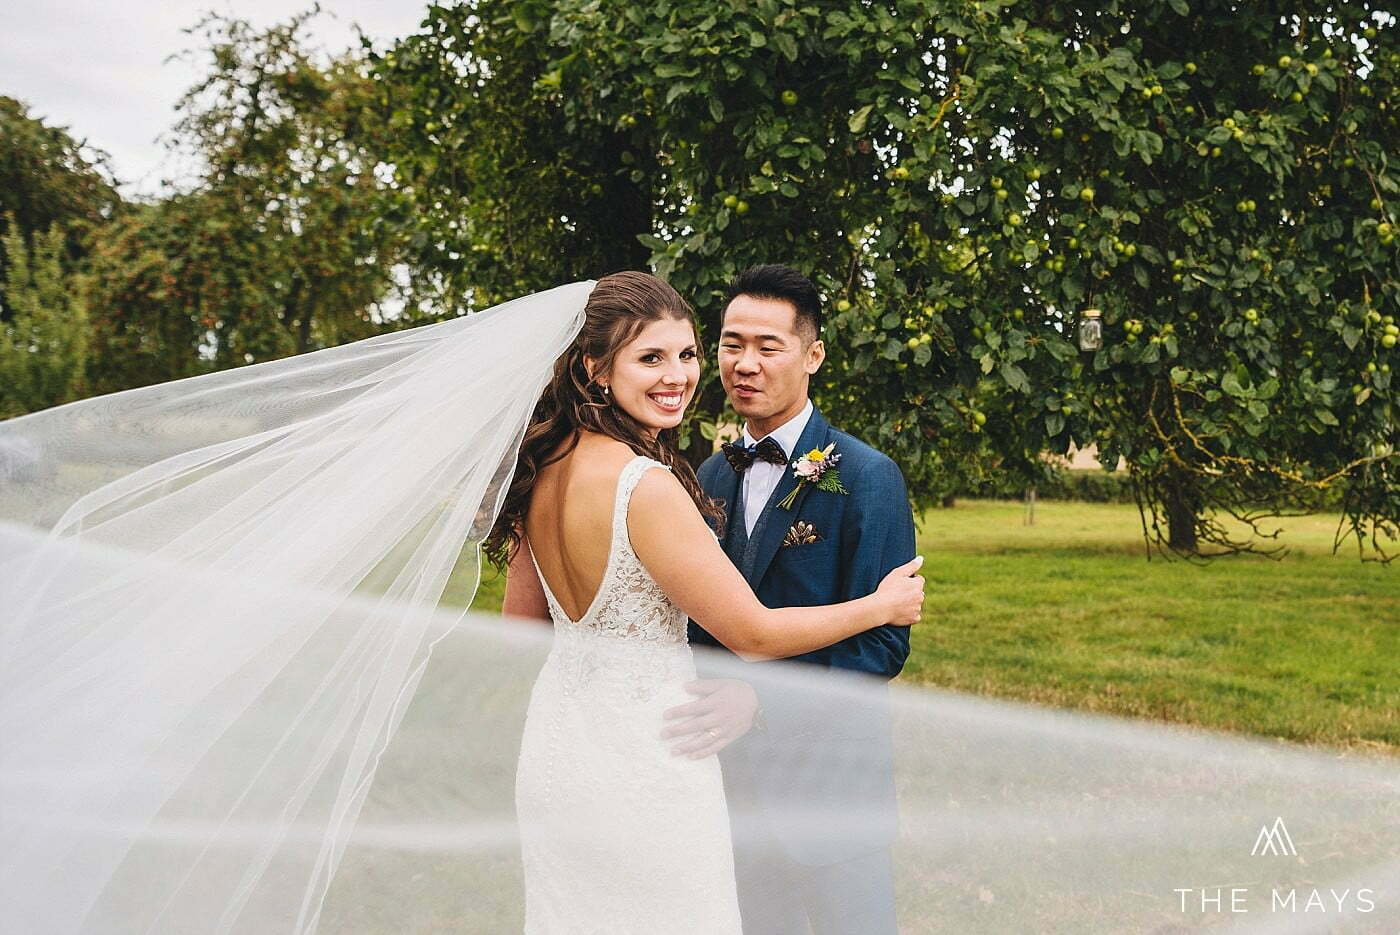 Herefordshire marquee wedding